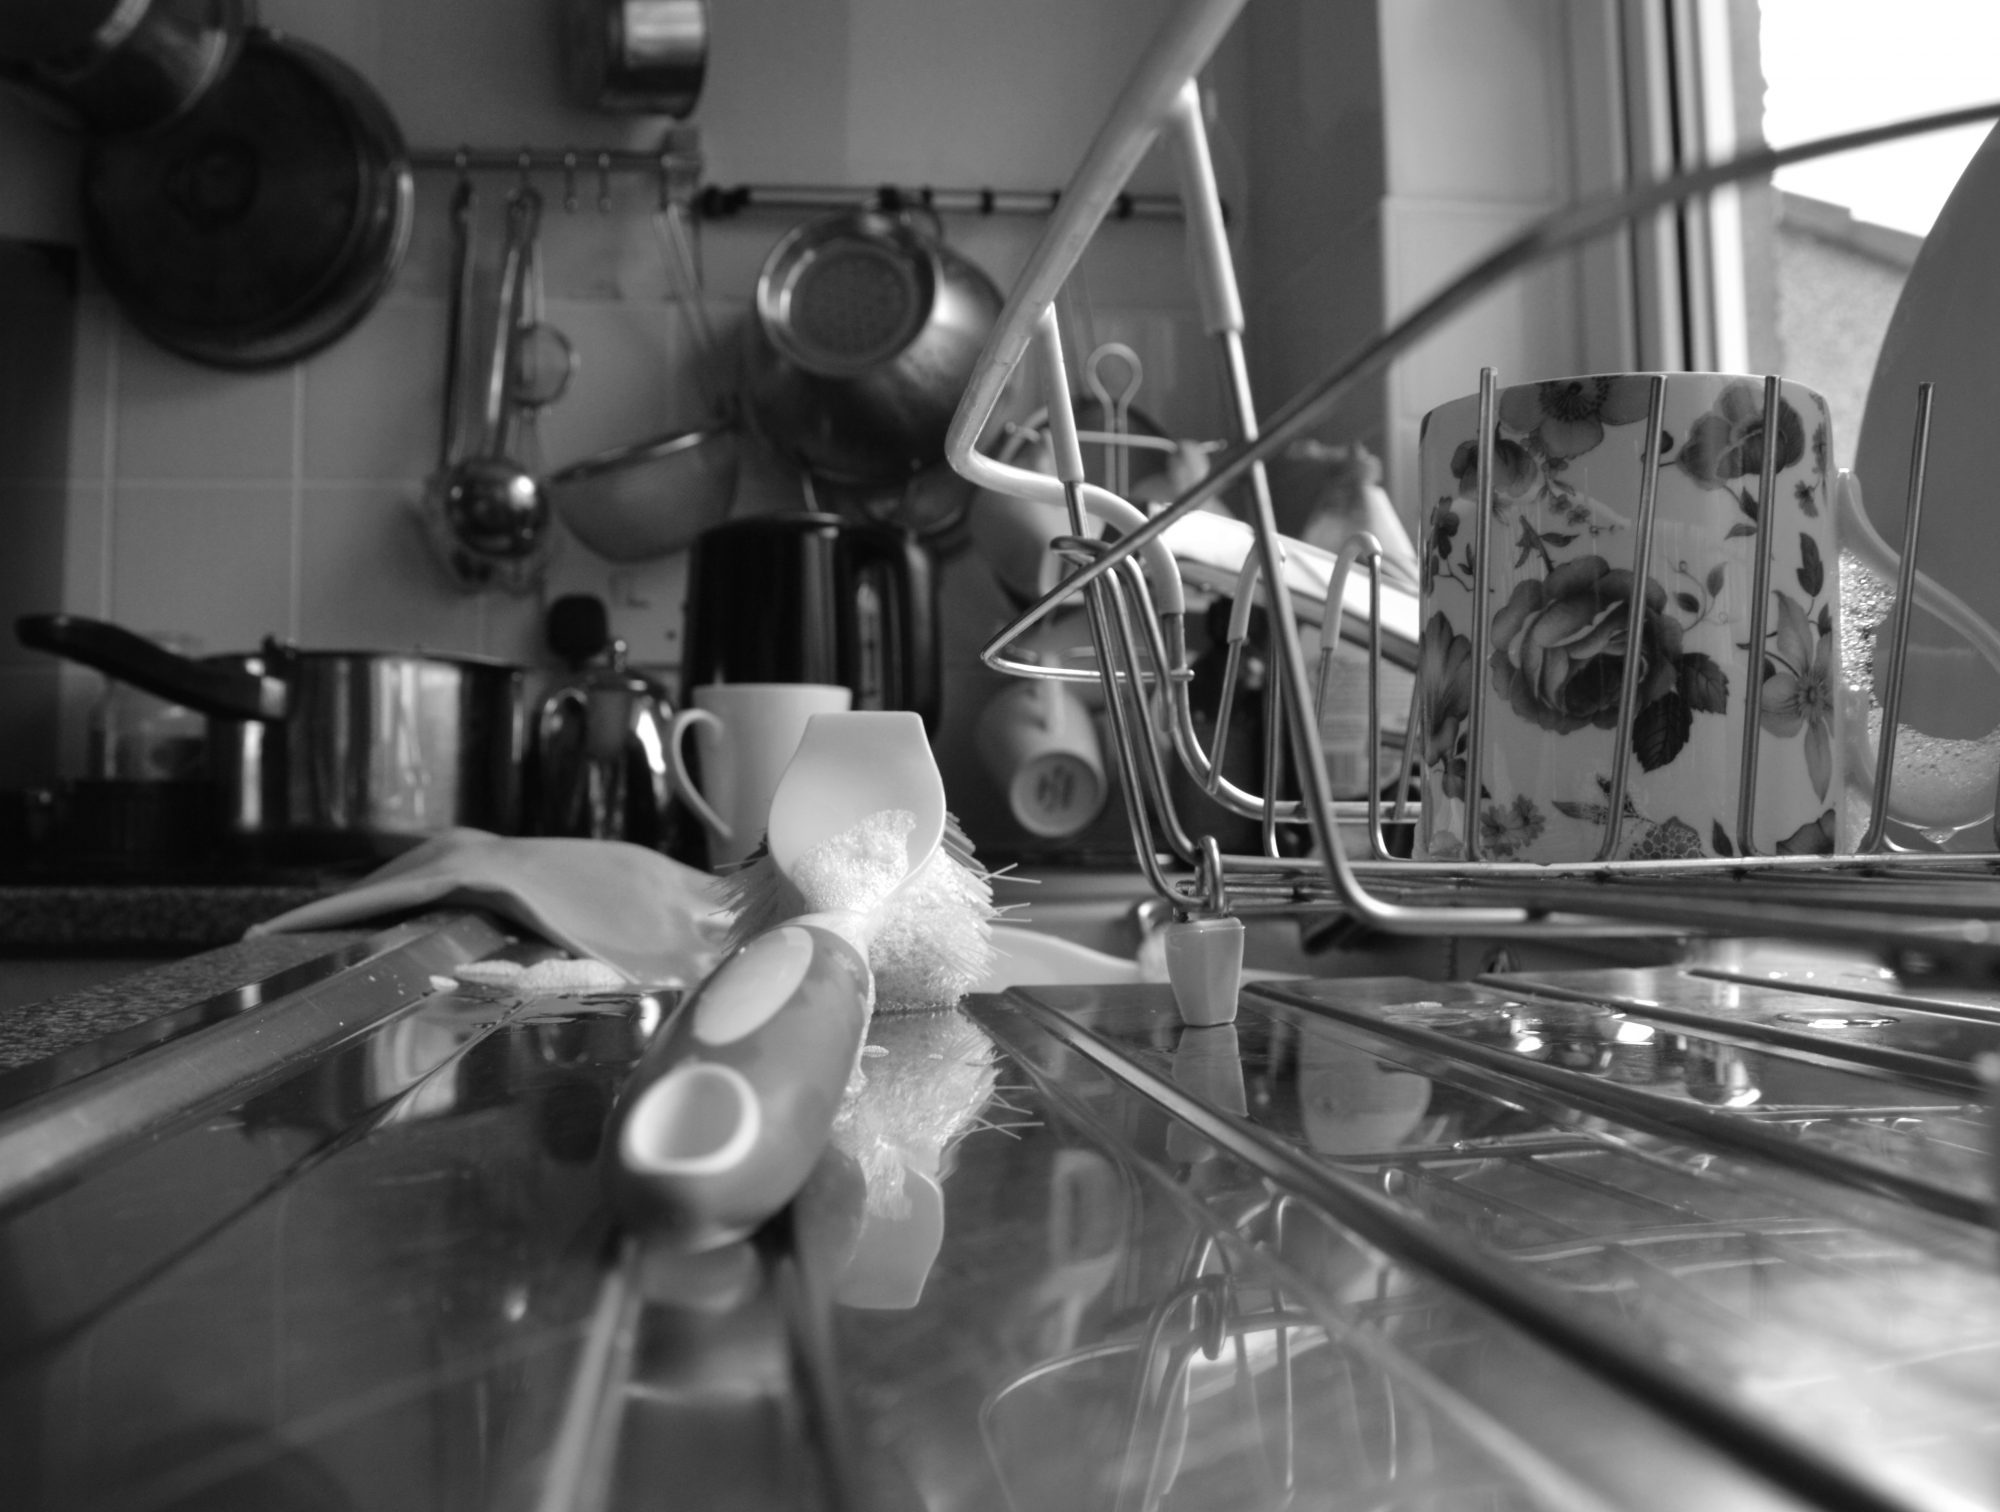 getty-messy-kitchen-image